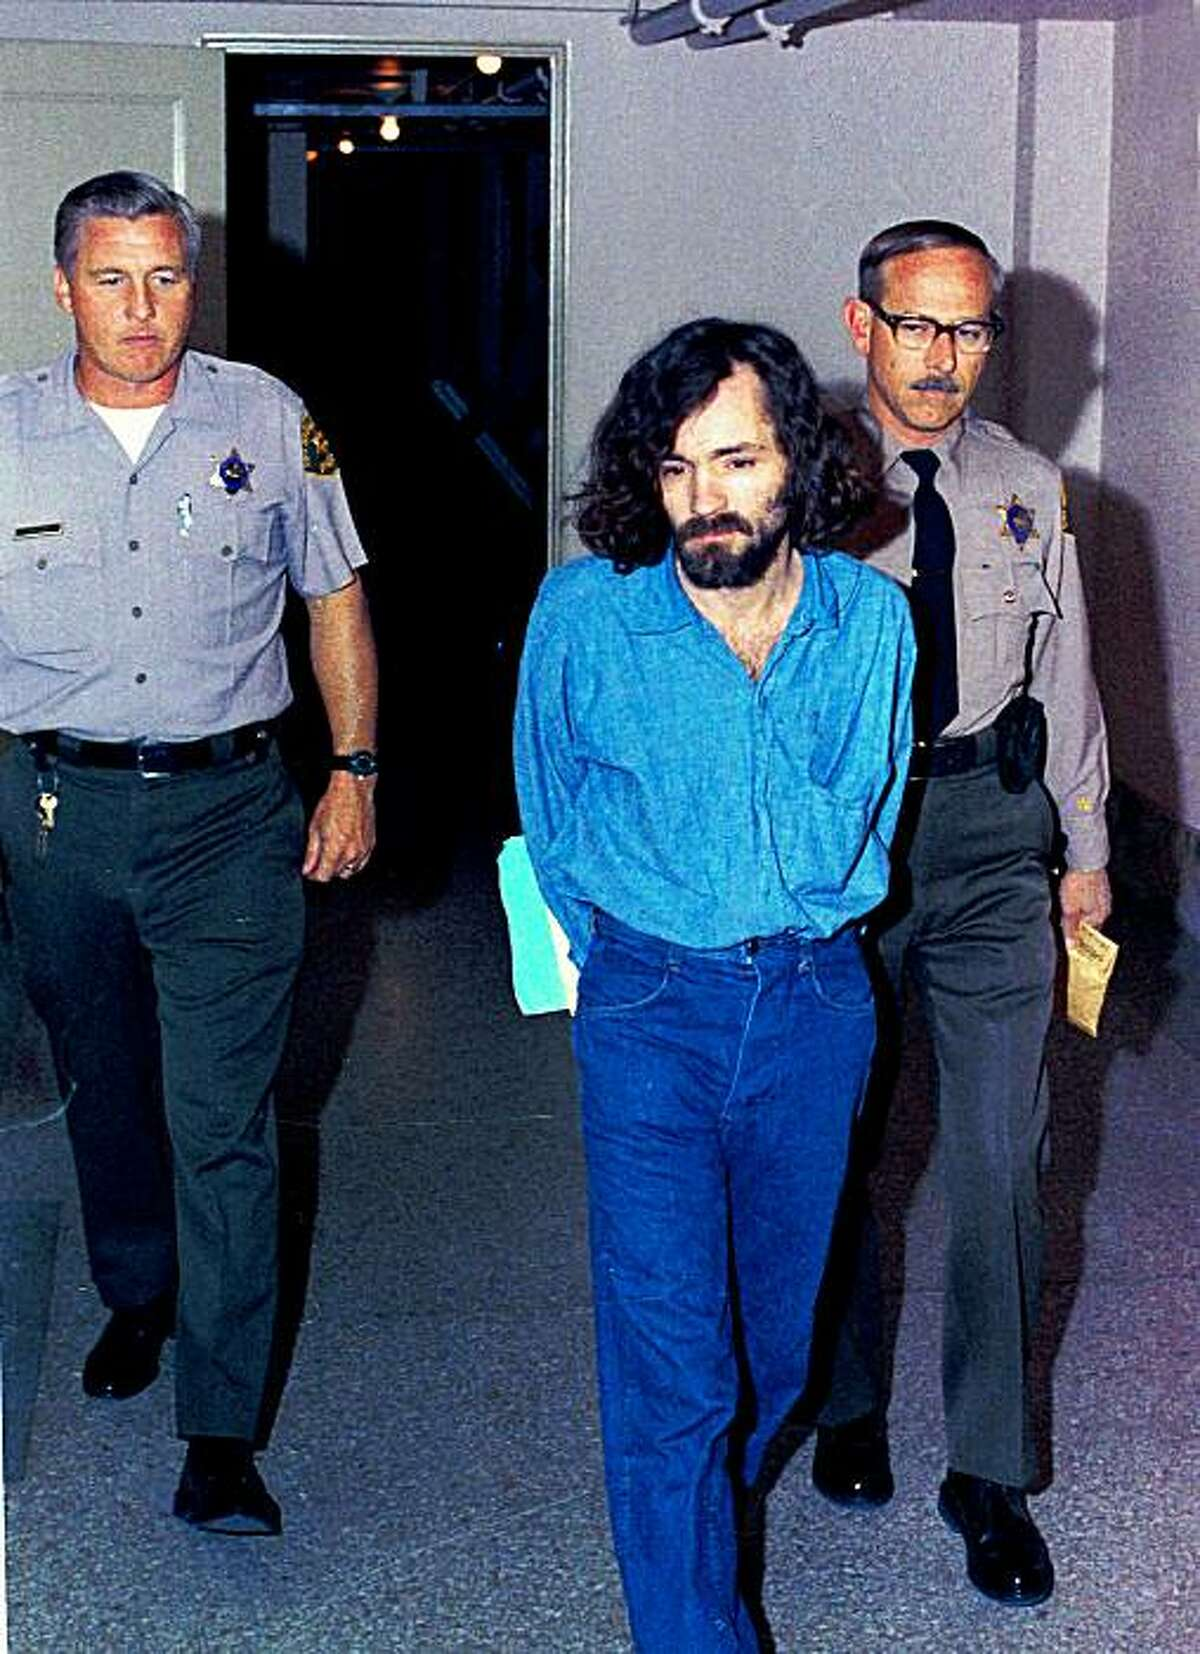 Charles Manson, head of the cult the Manson Family being escorted by deputy sheriffs on his way to court, in Los Angeles, Calif., after being charged with murder-conspiracy in the Tate-LaBianca slayings Aug. 20, 1970.